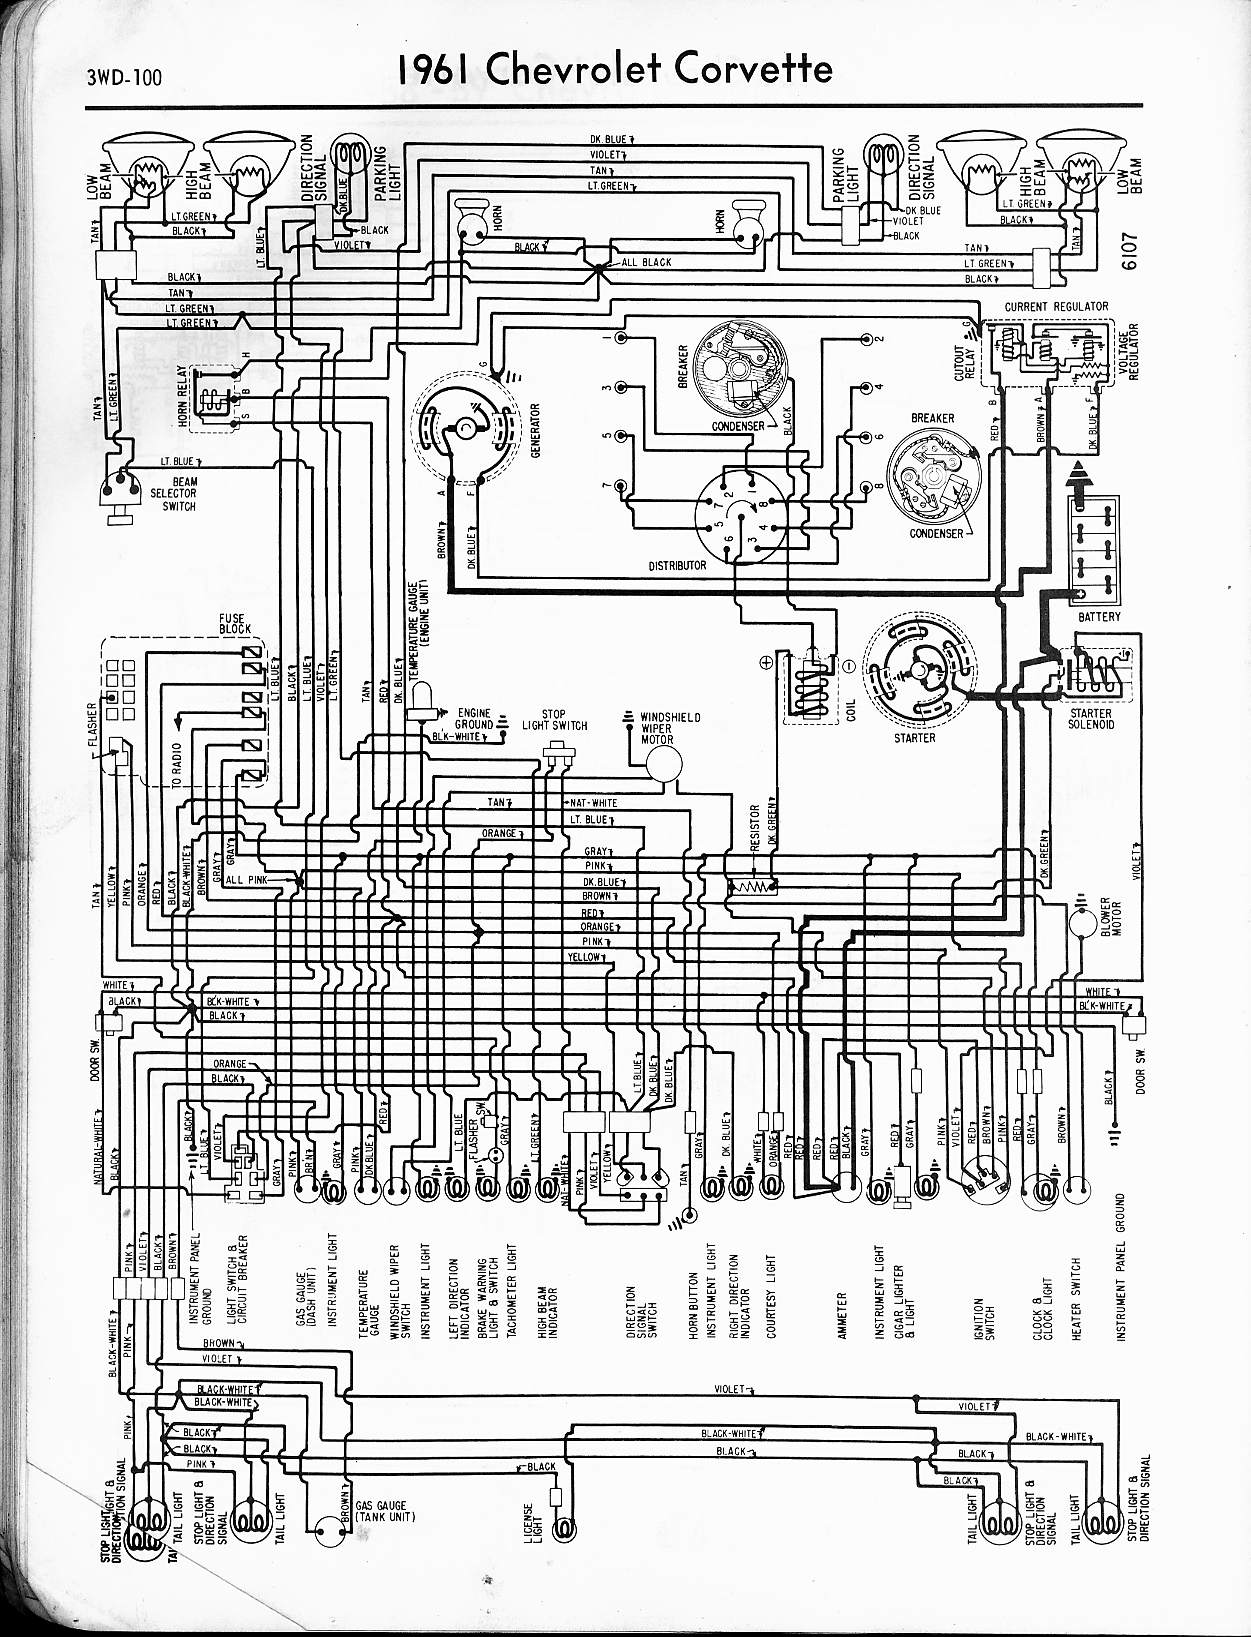 1961 chevy pickup wire diagram trusted wiring diagram u2022 rh soulmatestyle co